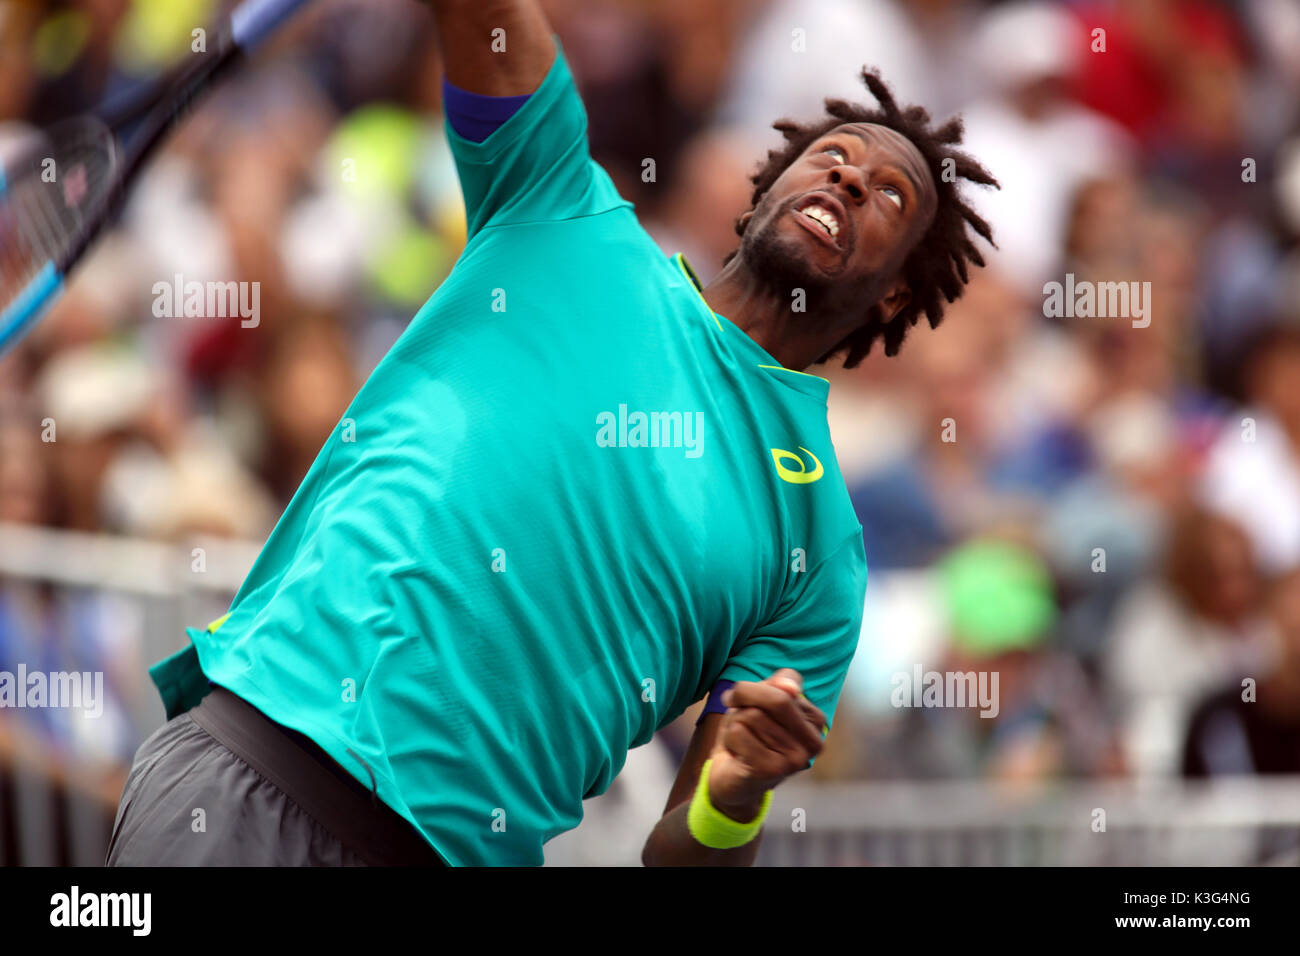 New York, USA. 2nd September, 2017. Gael Monfils of France serving during his third round match against David Goffin - Stock Image